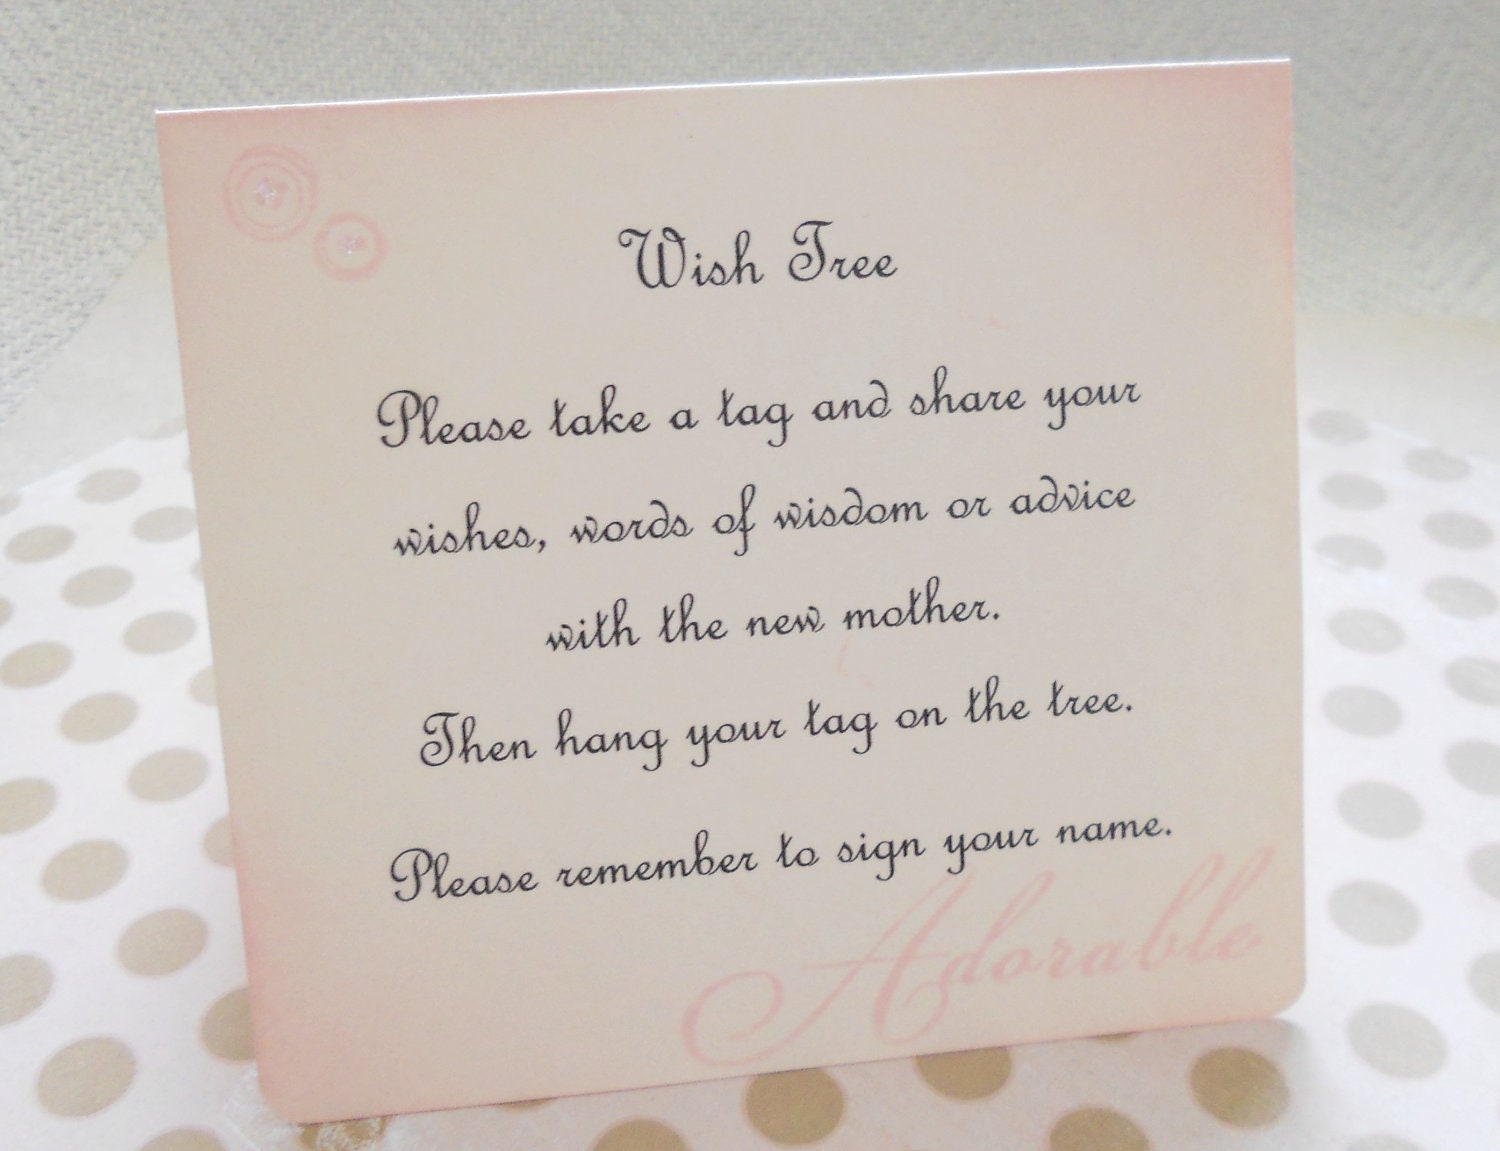 wish card instruction sign baby shower wish tree